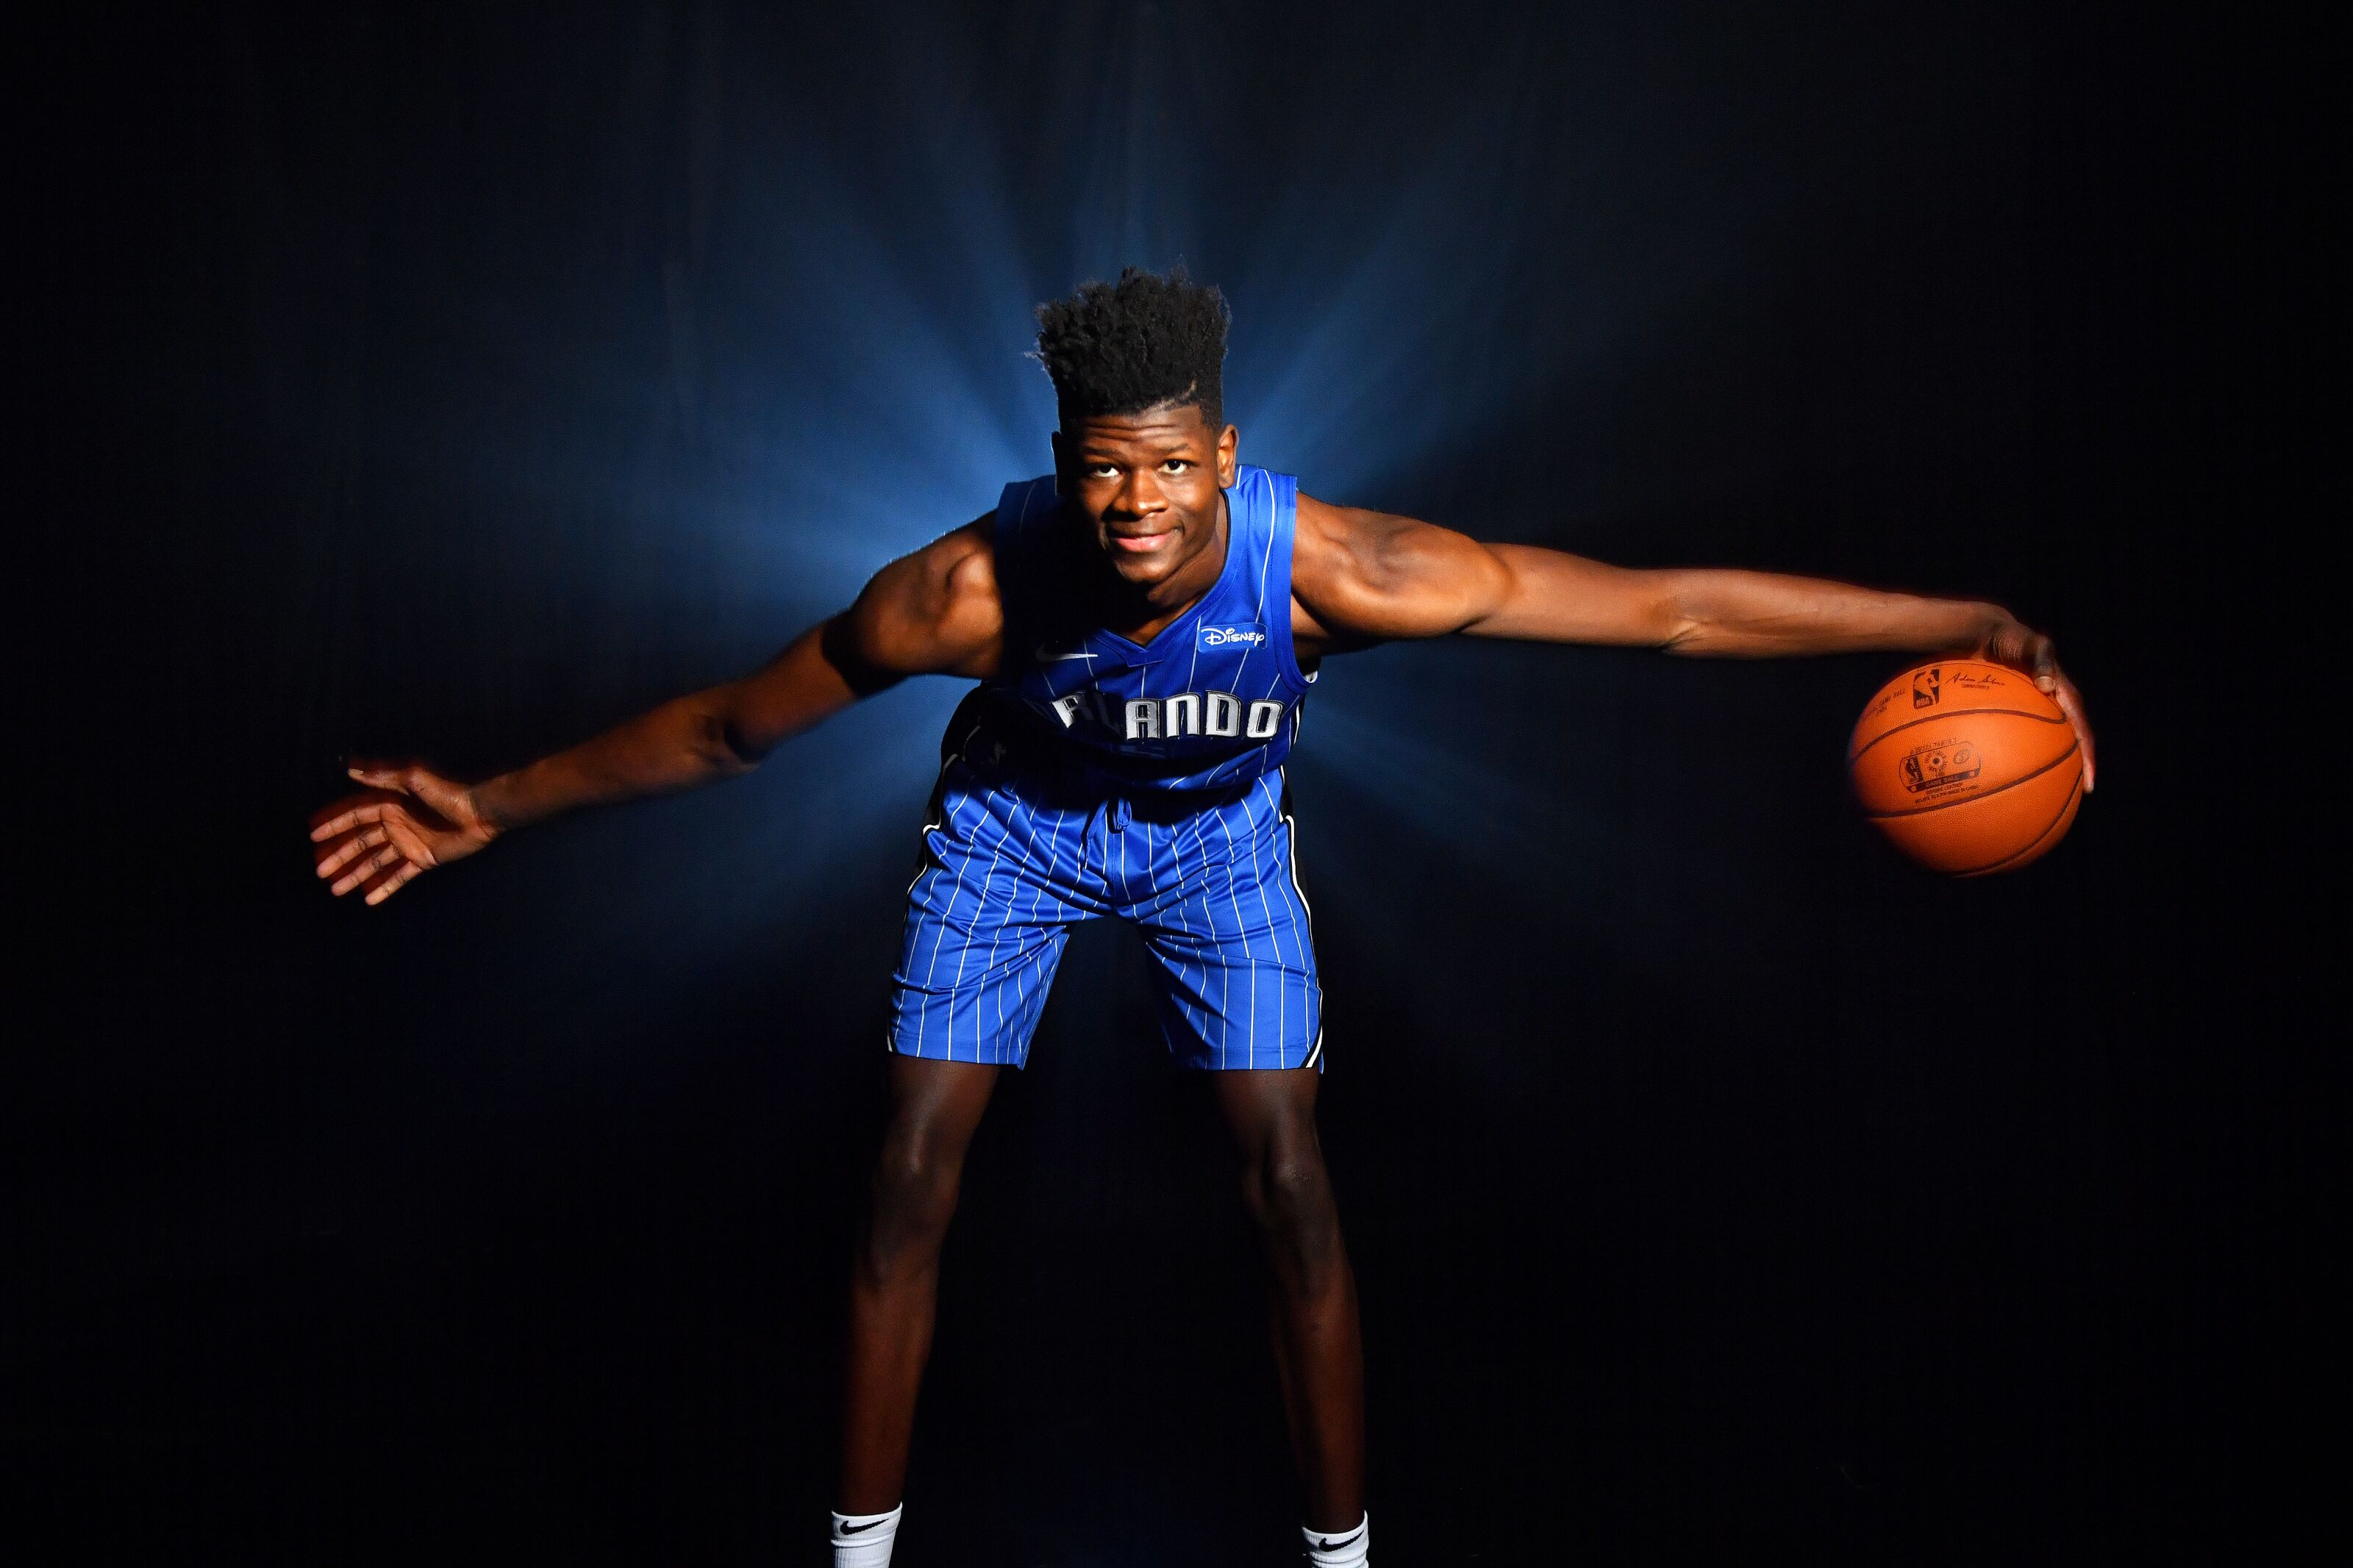 Orlando Magic's Mohamed Bamba's ascendance is entirely up to